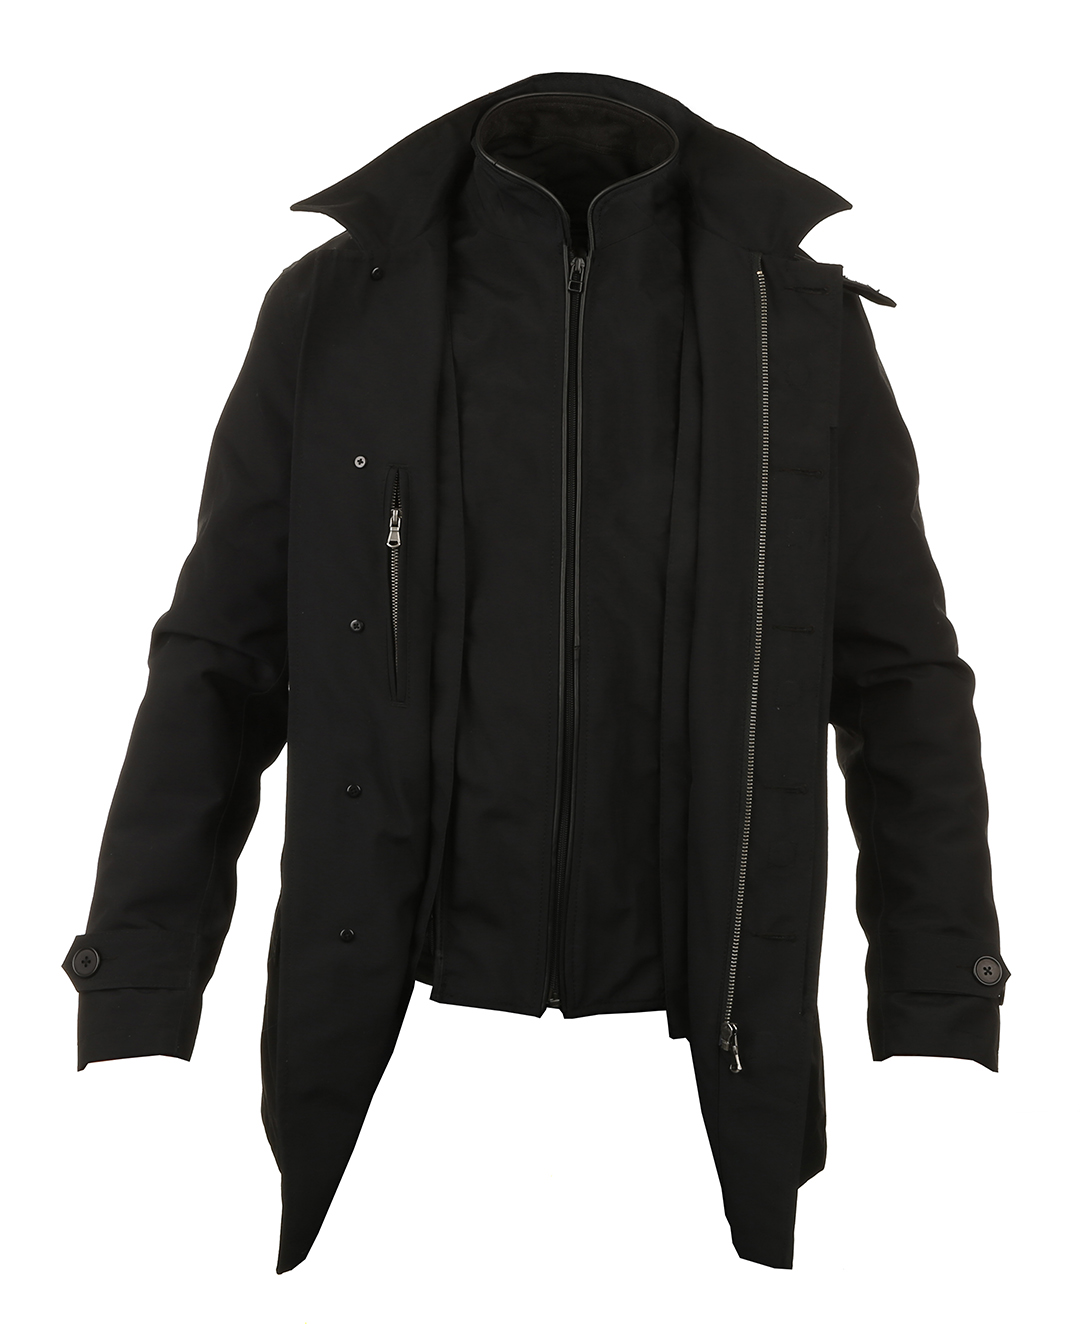 Le Trench Coat de Vstreet